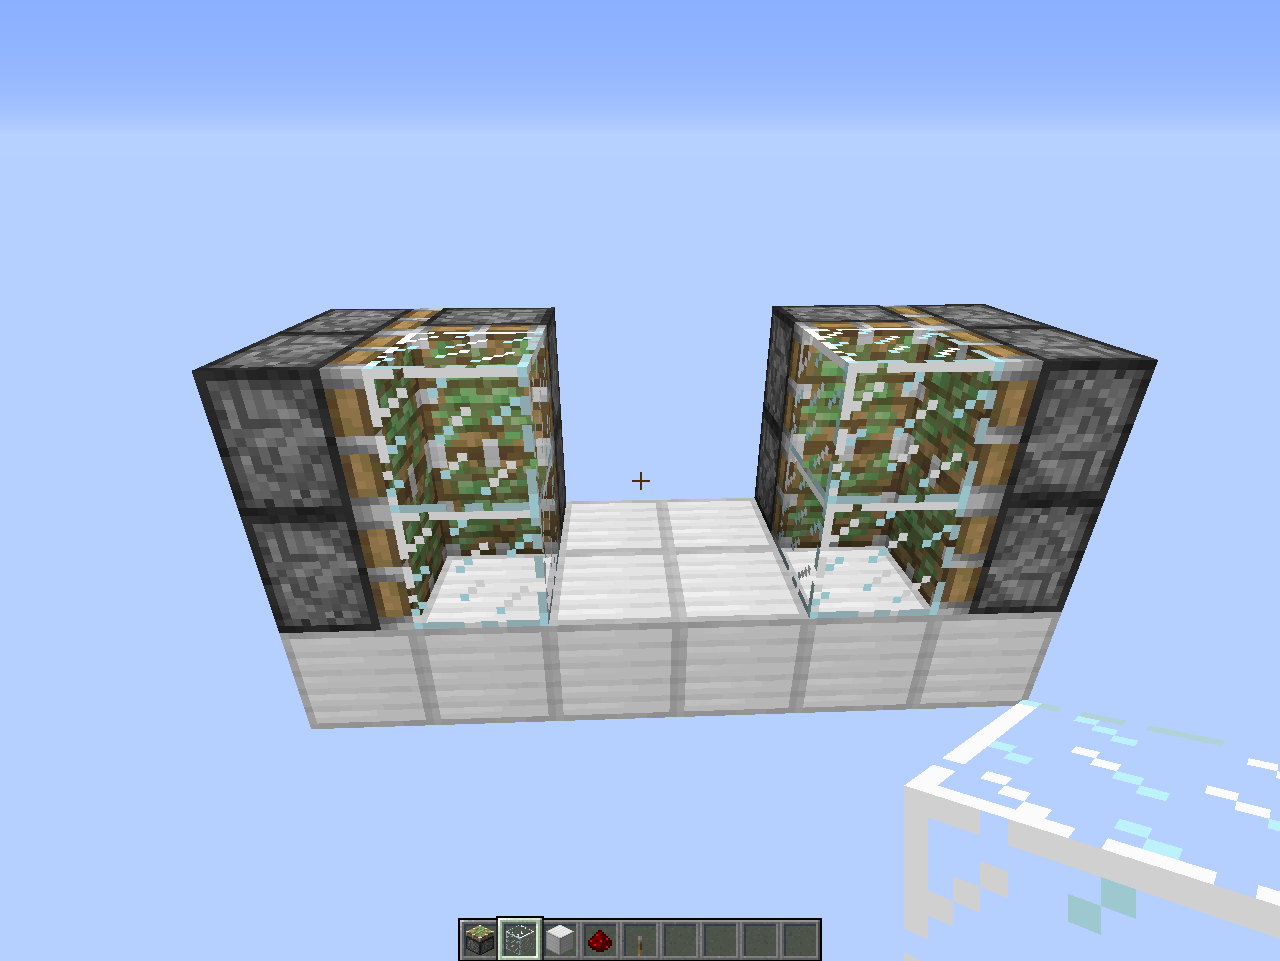 minecraft redstone creations how to build